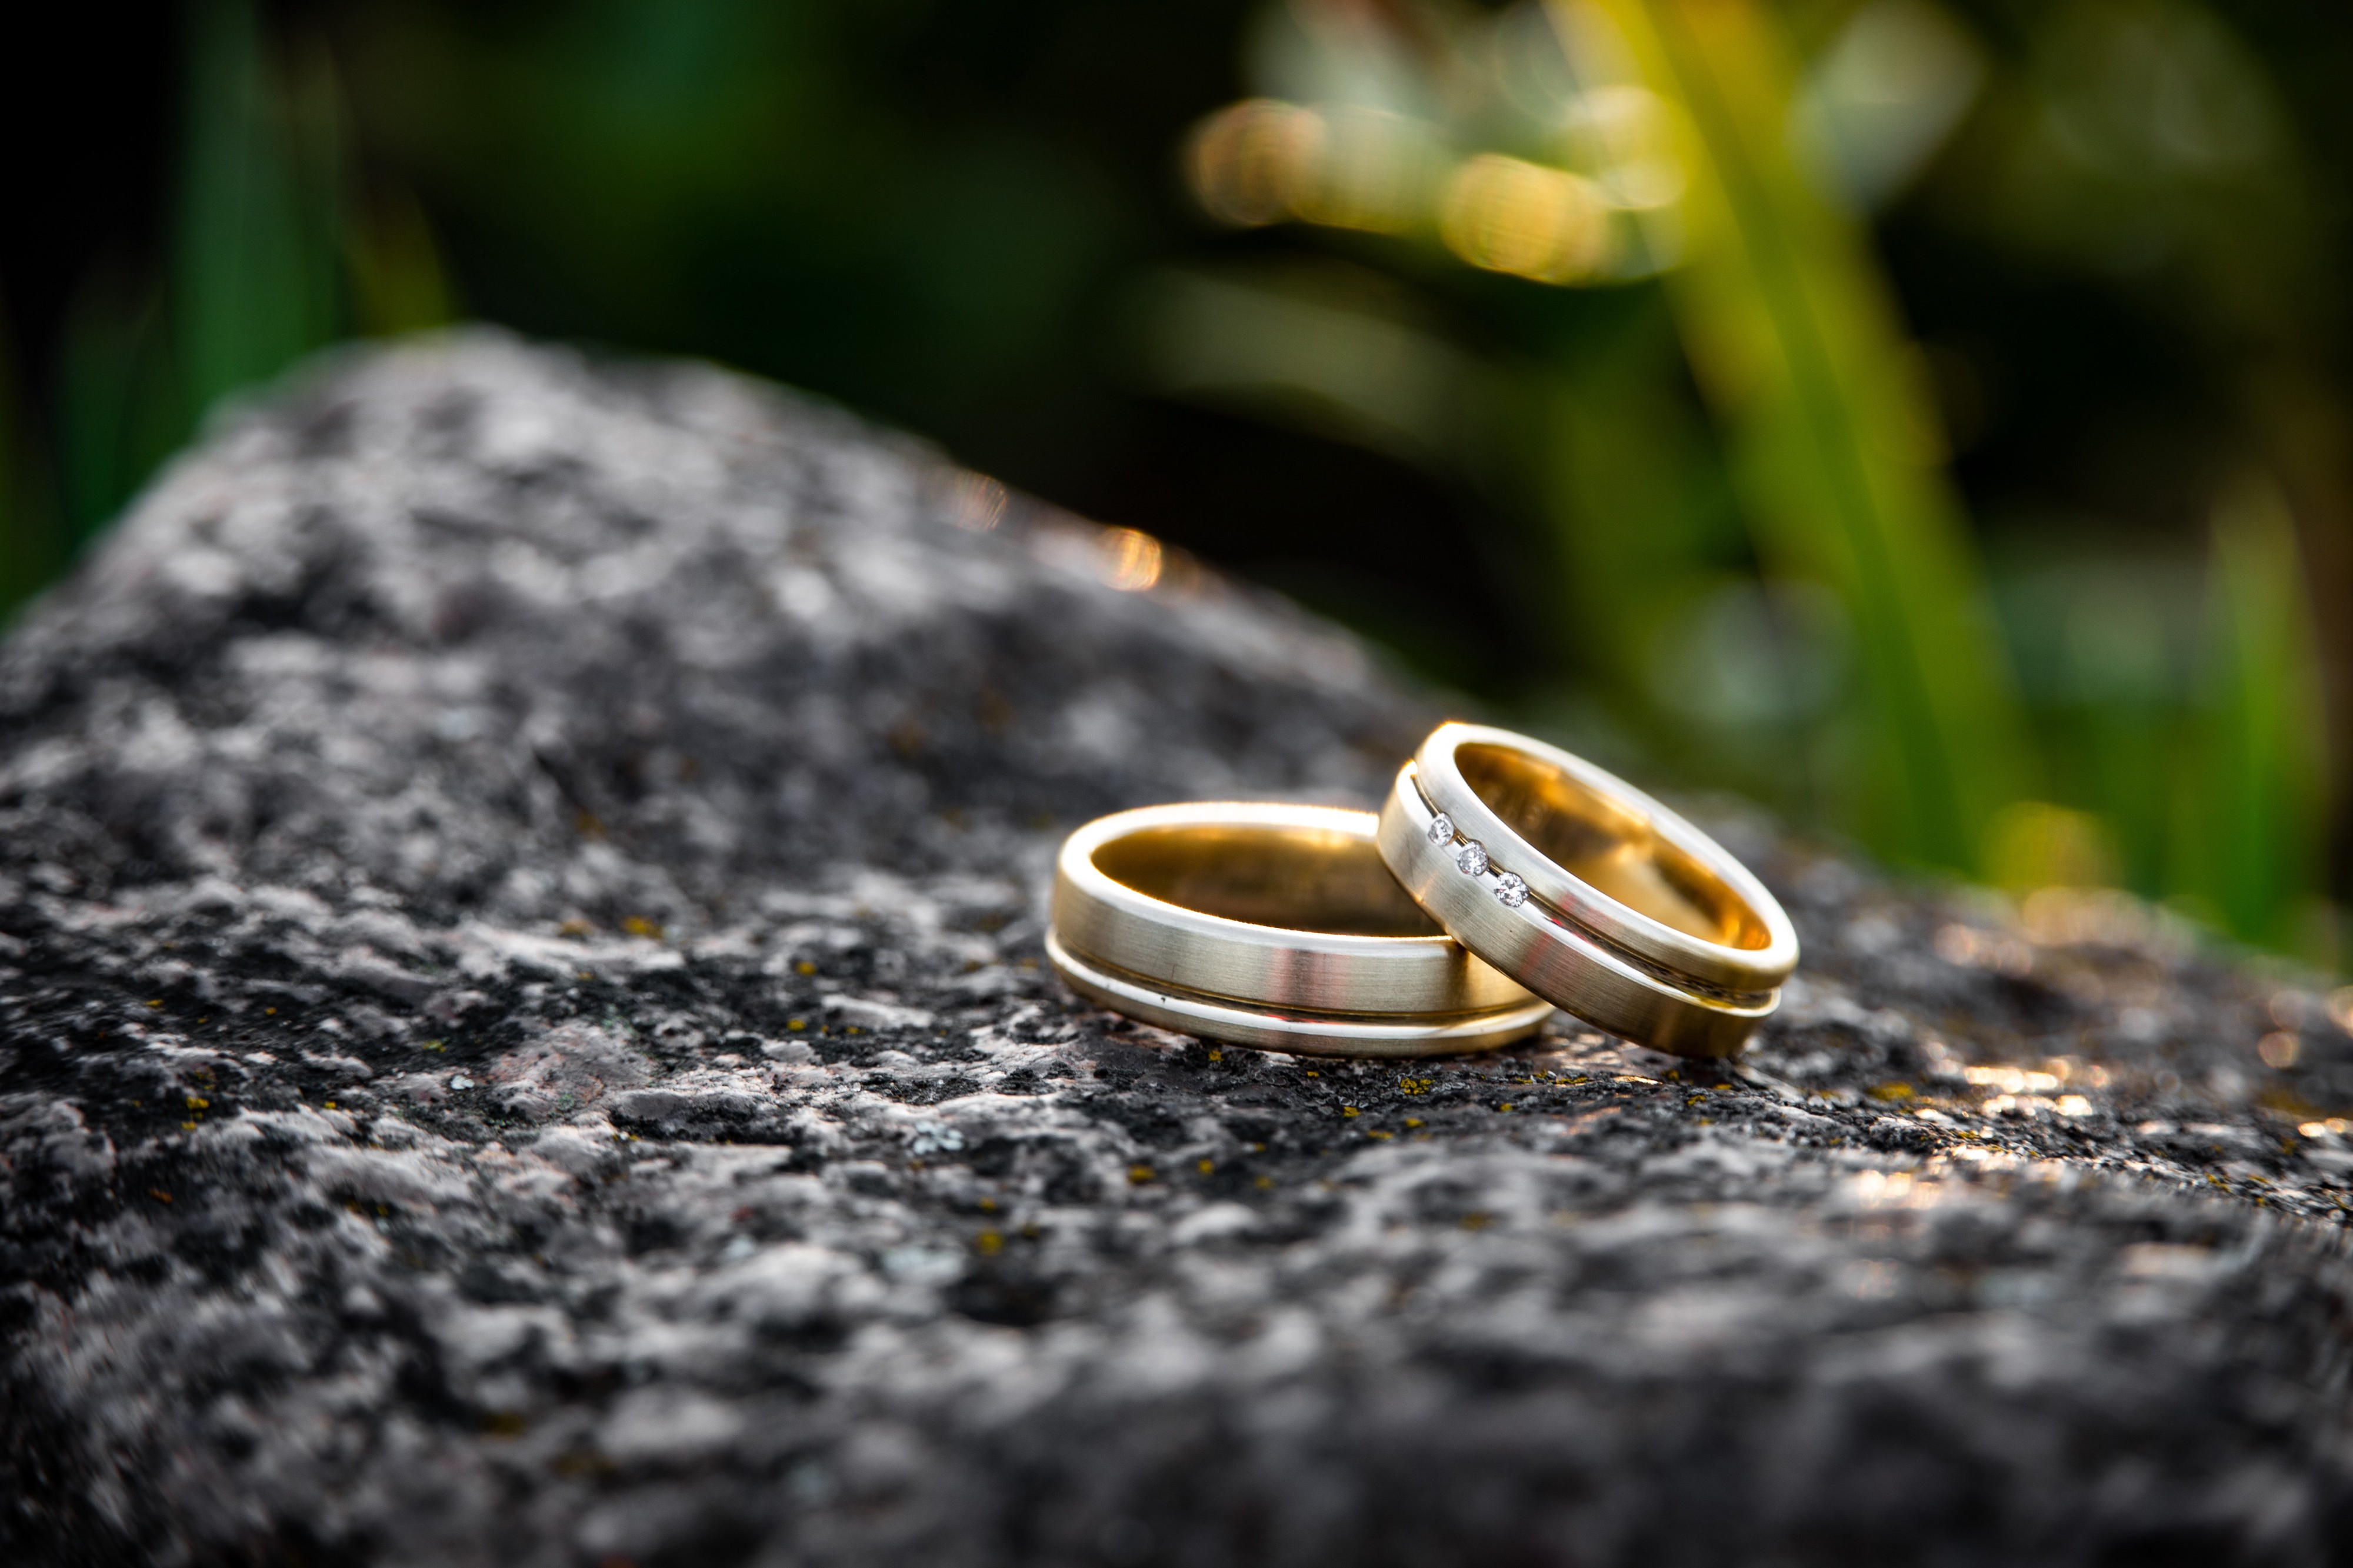 Two wedding rings on a rock